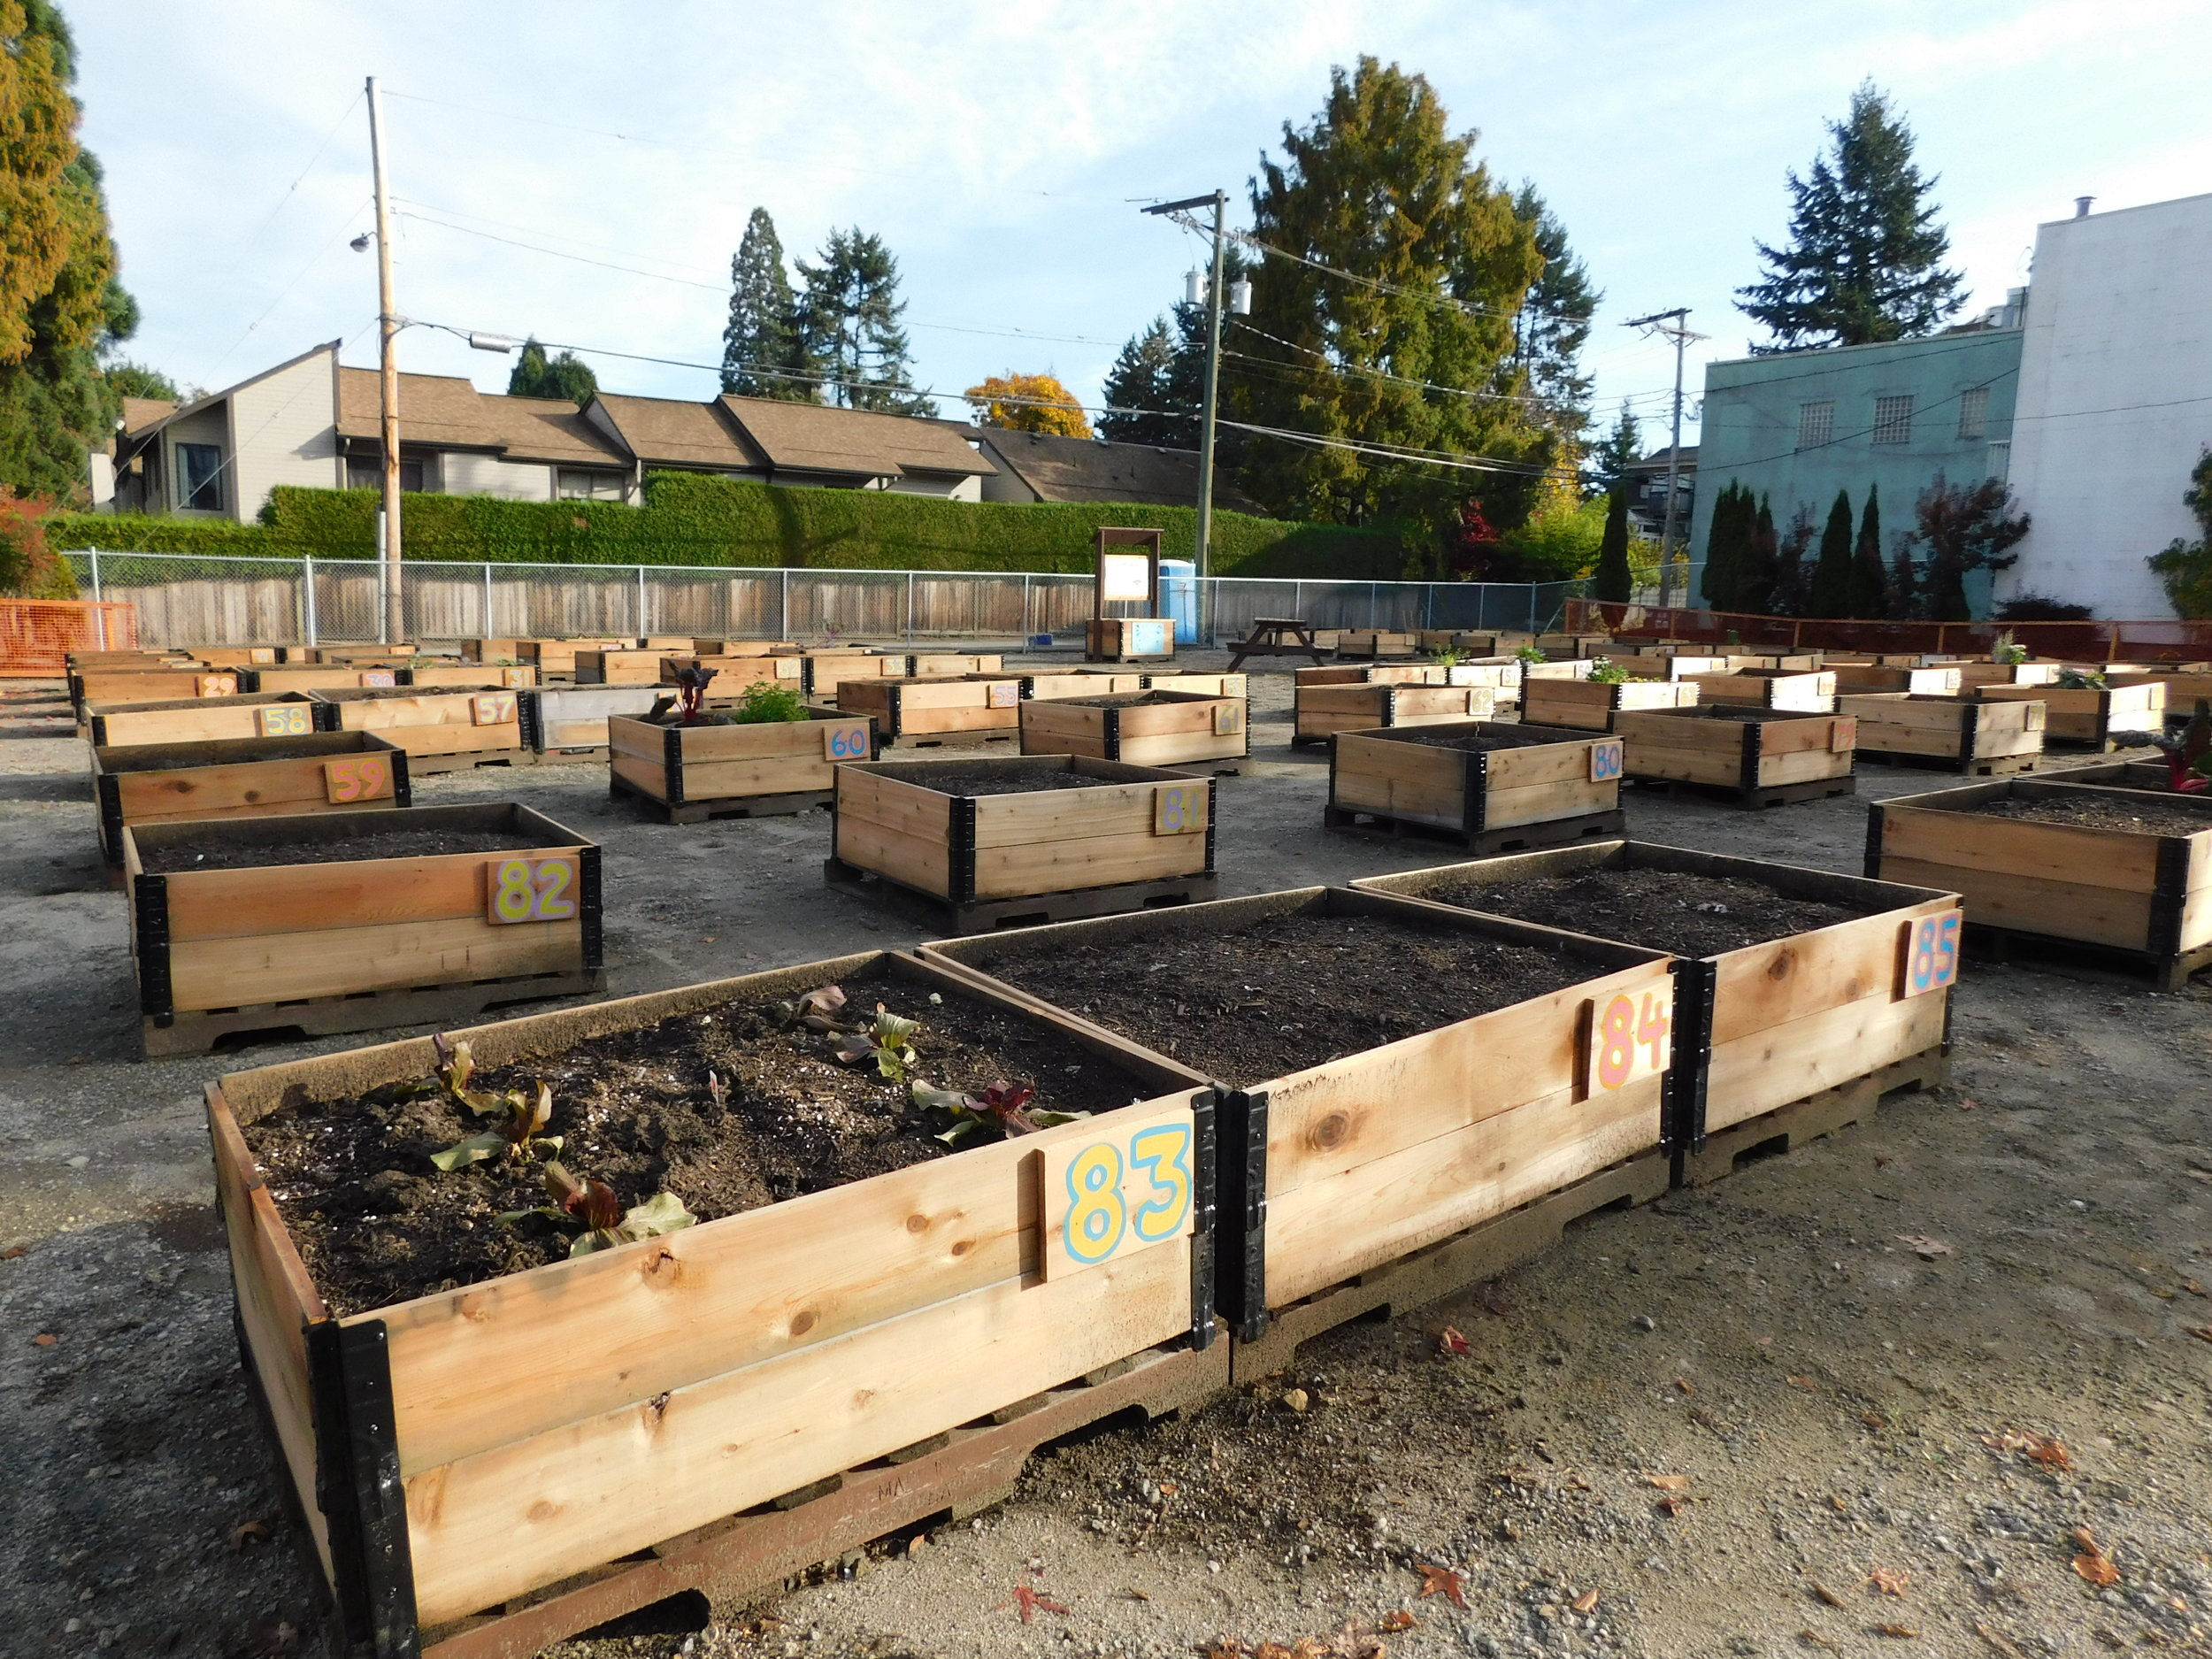 Cambie_16th_Vancouver_Community_Garden_Builders-0012.JPG